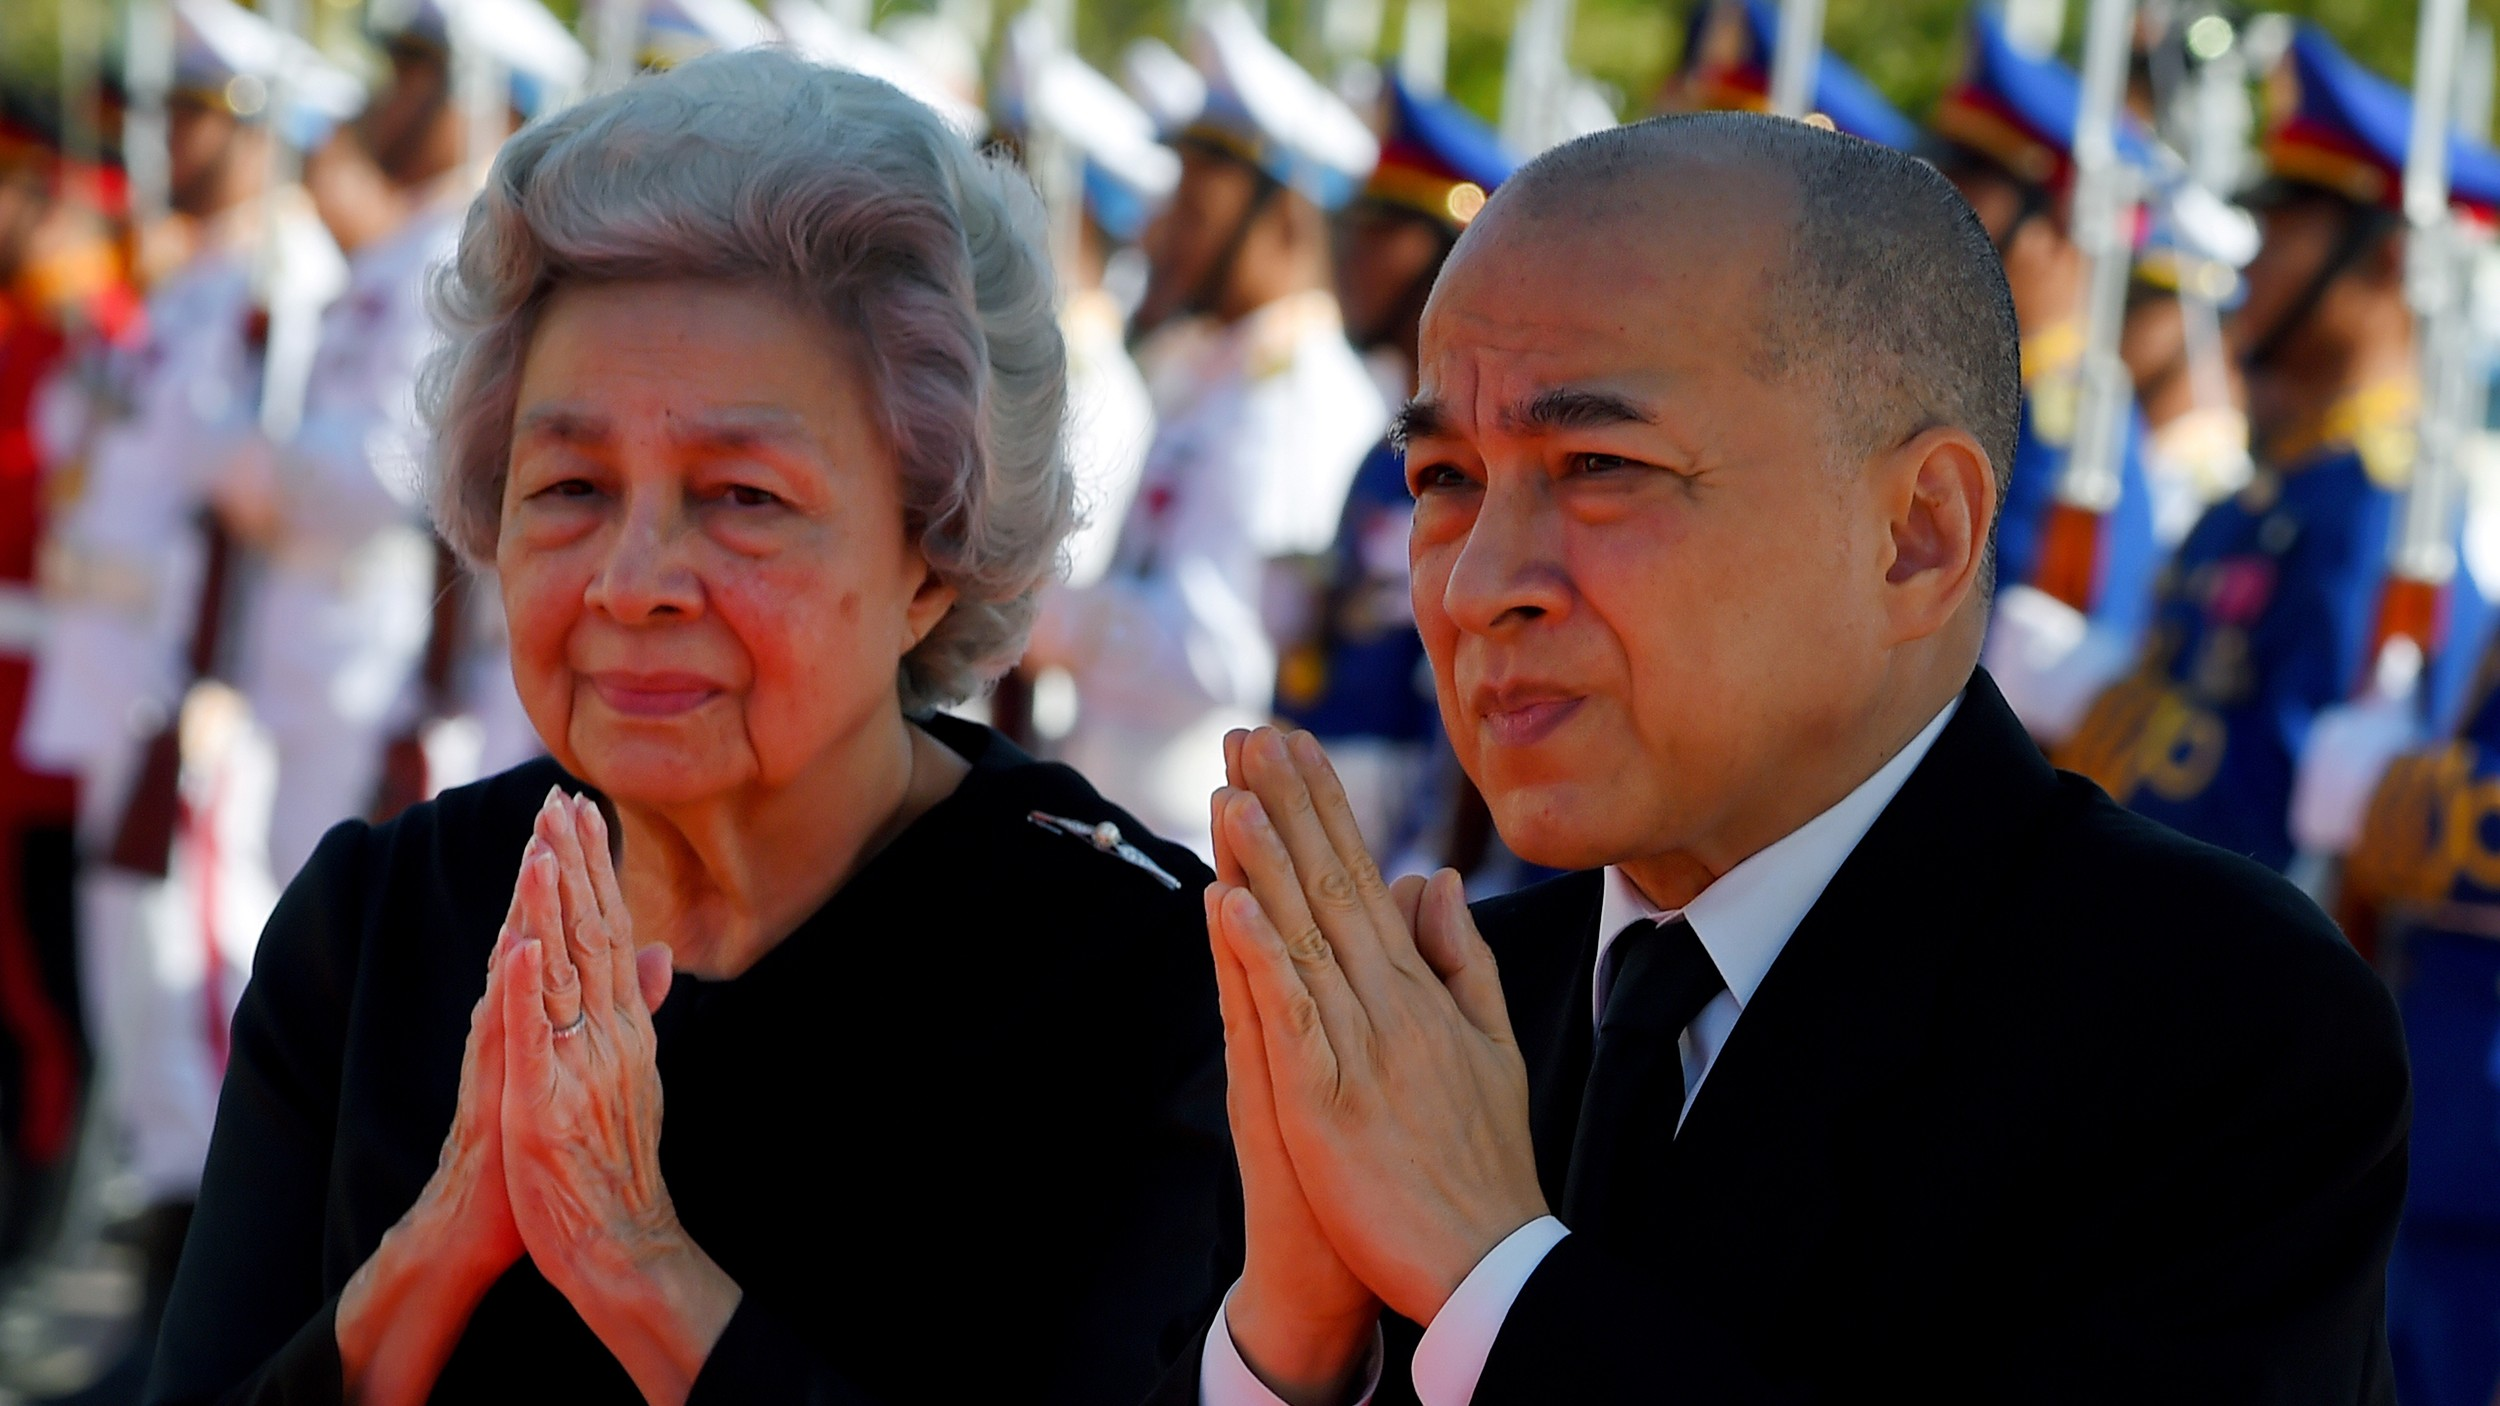 Cambodia's King Norodom Sihamoni (R) and his mother former queen Monique (L) walk past honor guards during the cremation of Princess Norodom Buppha Devi in front of a pagoda in Phnom Penh, Nov. 25, 2019.